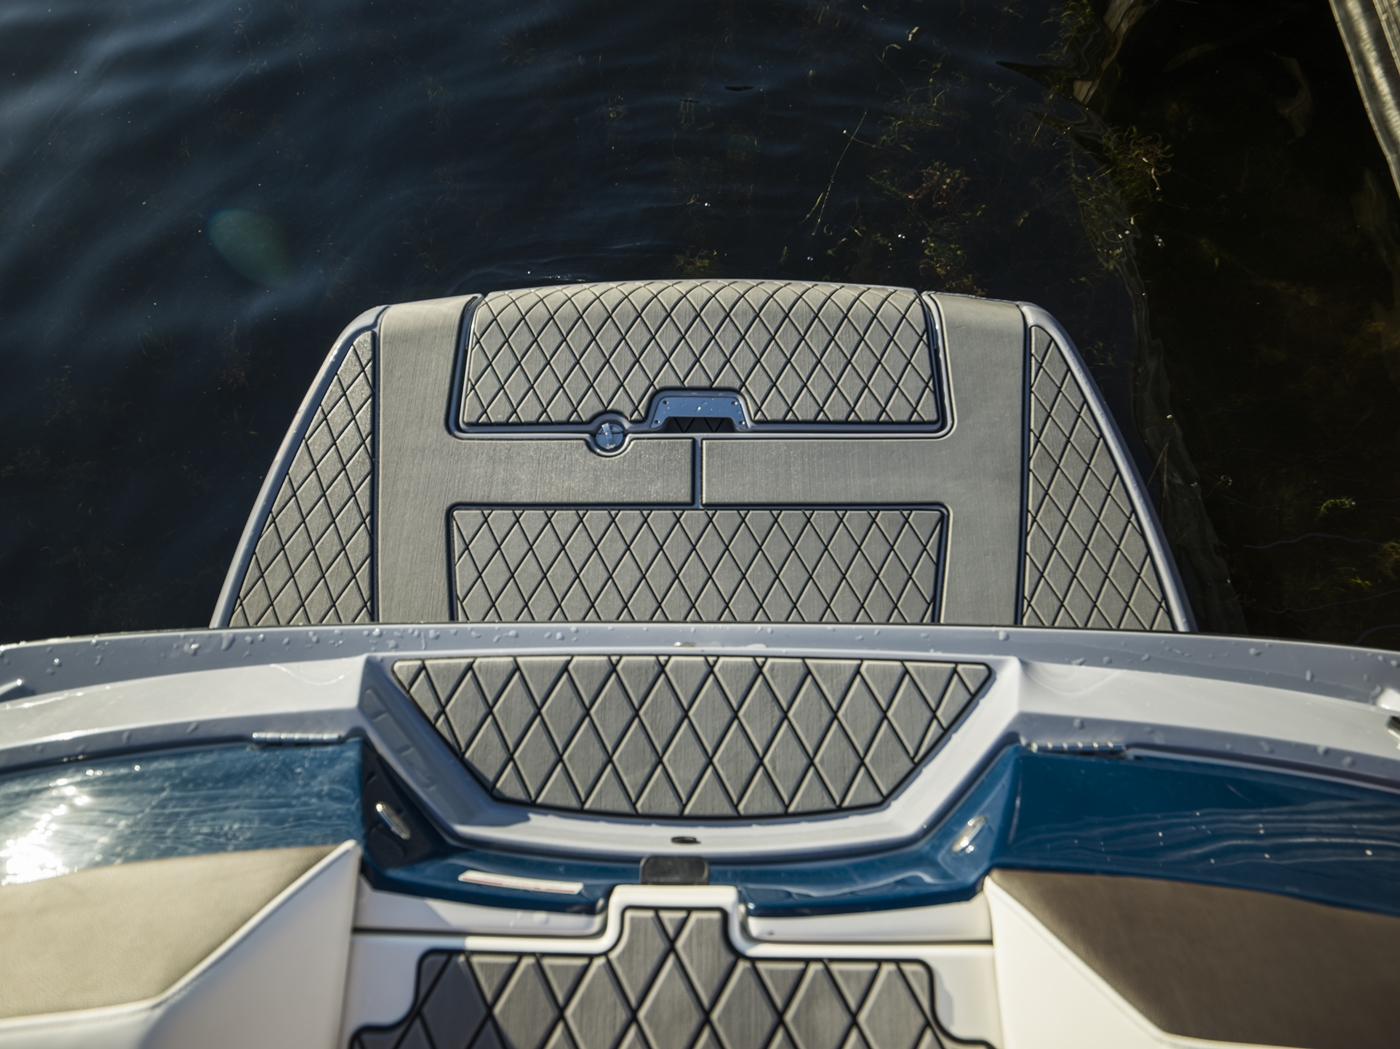 2017 Sea Ray boat for sale, model of the boat is SLX-W 230 & Image # 22 of 26